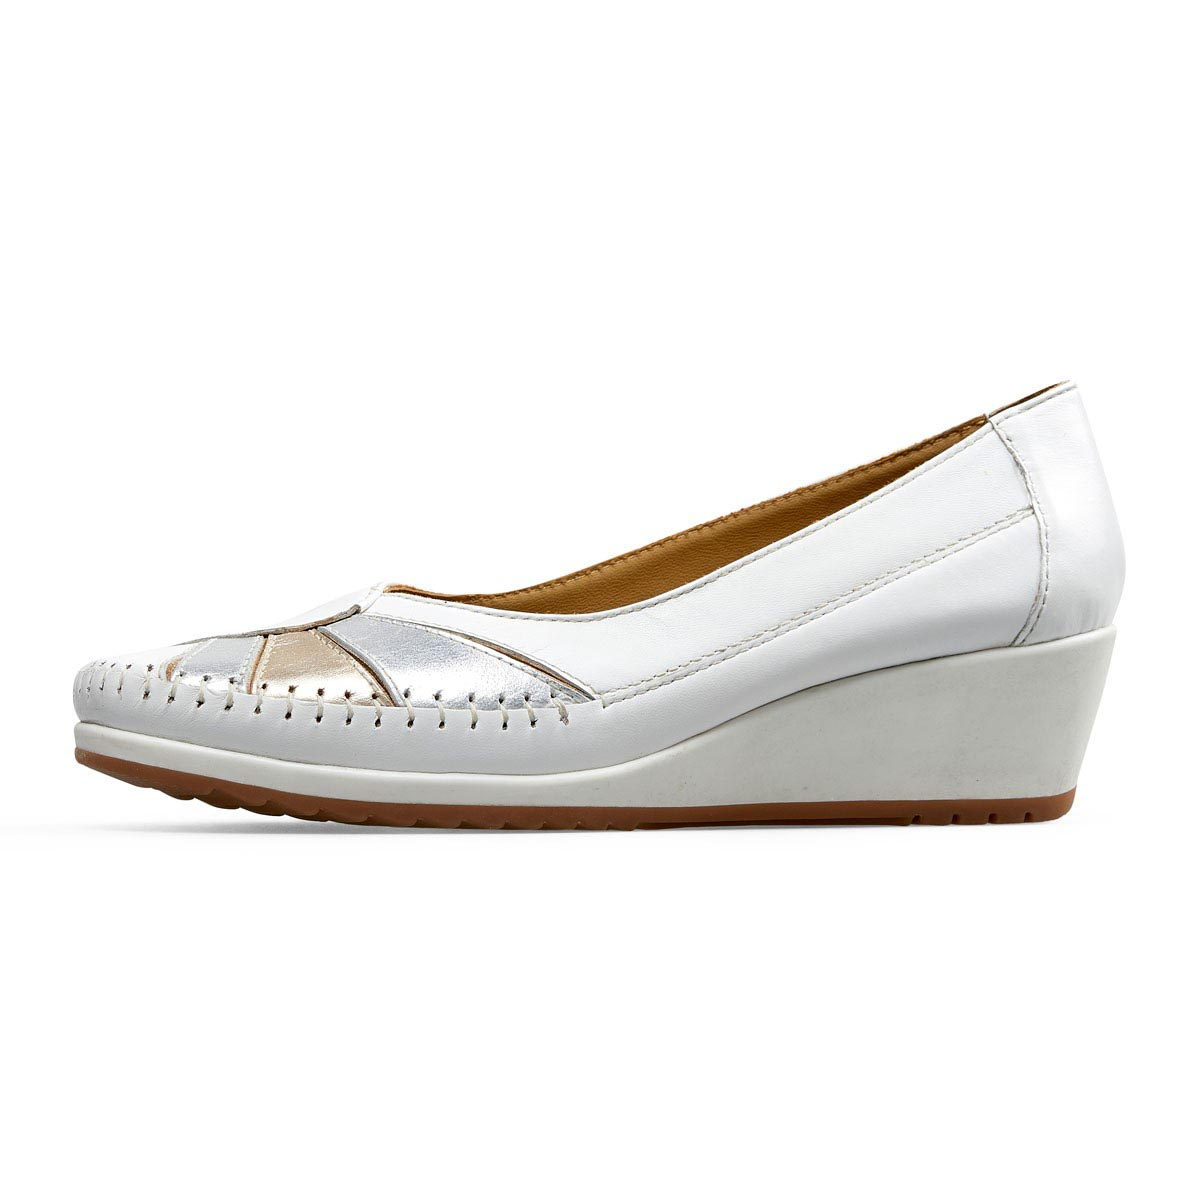 Van Dal - River White Leather Wedge